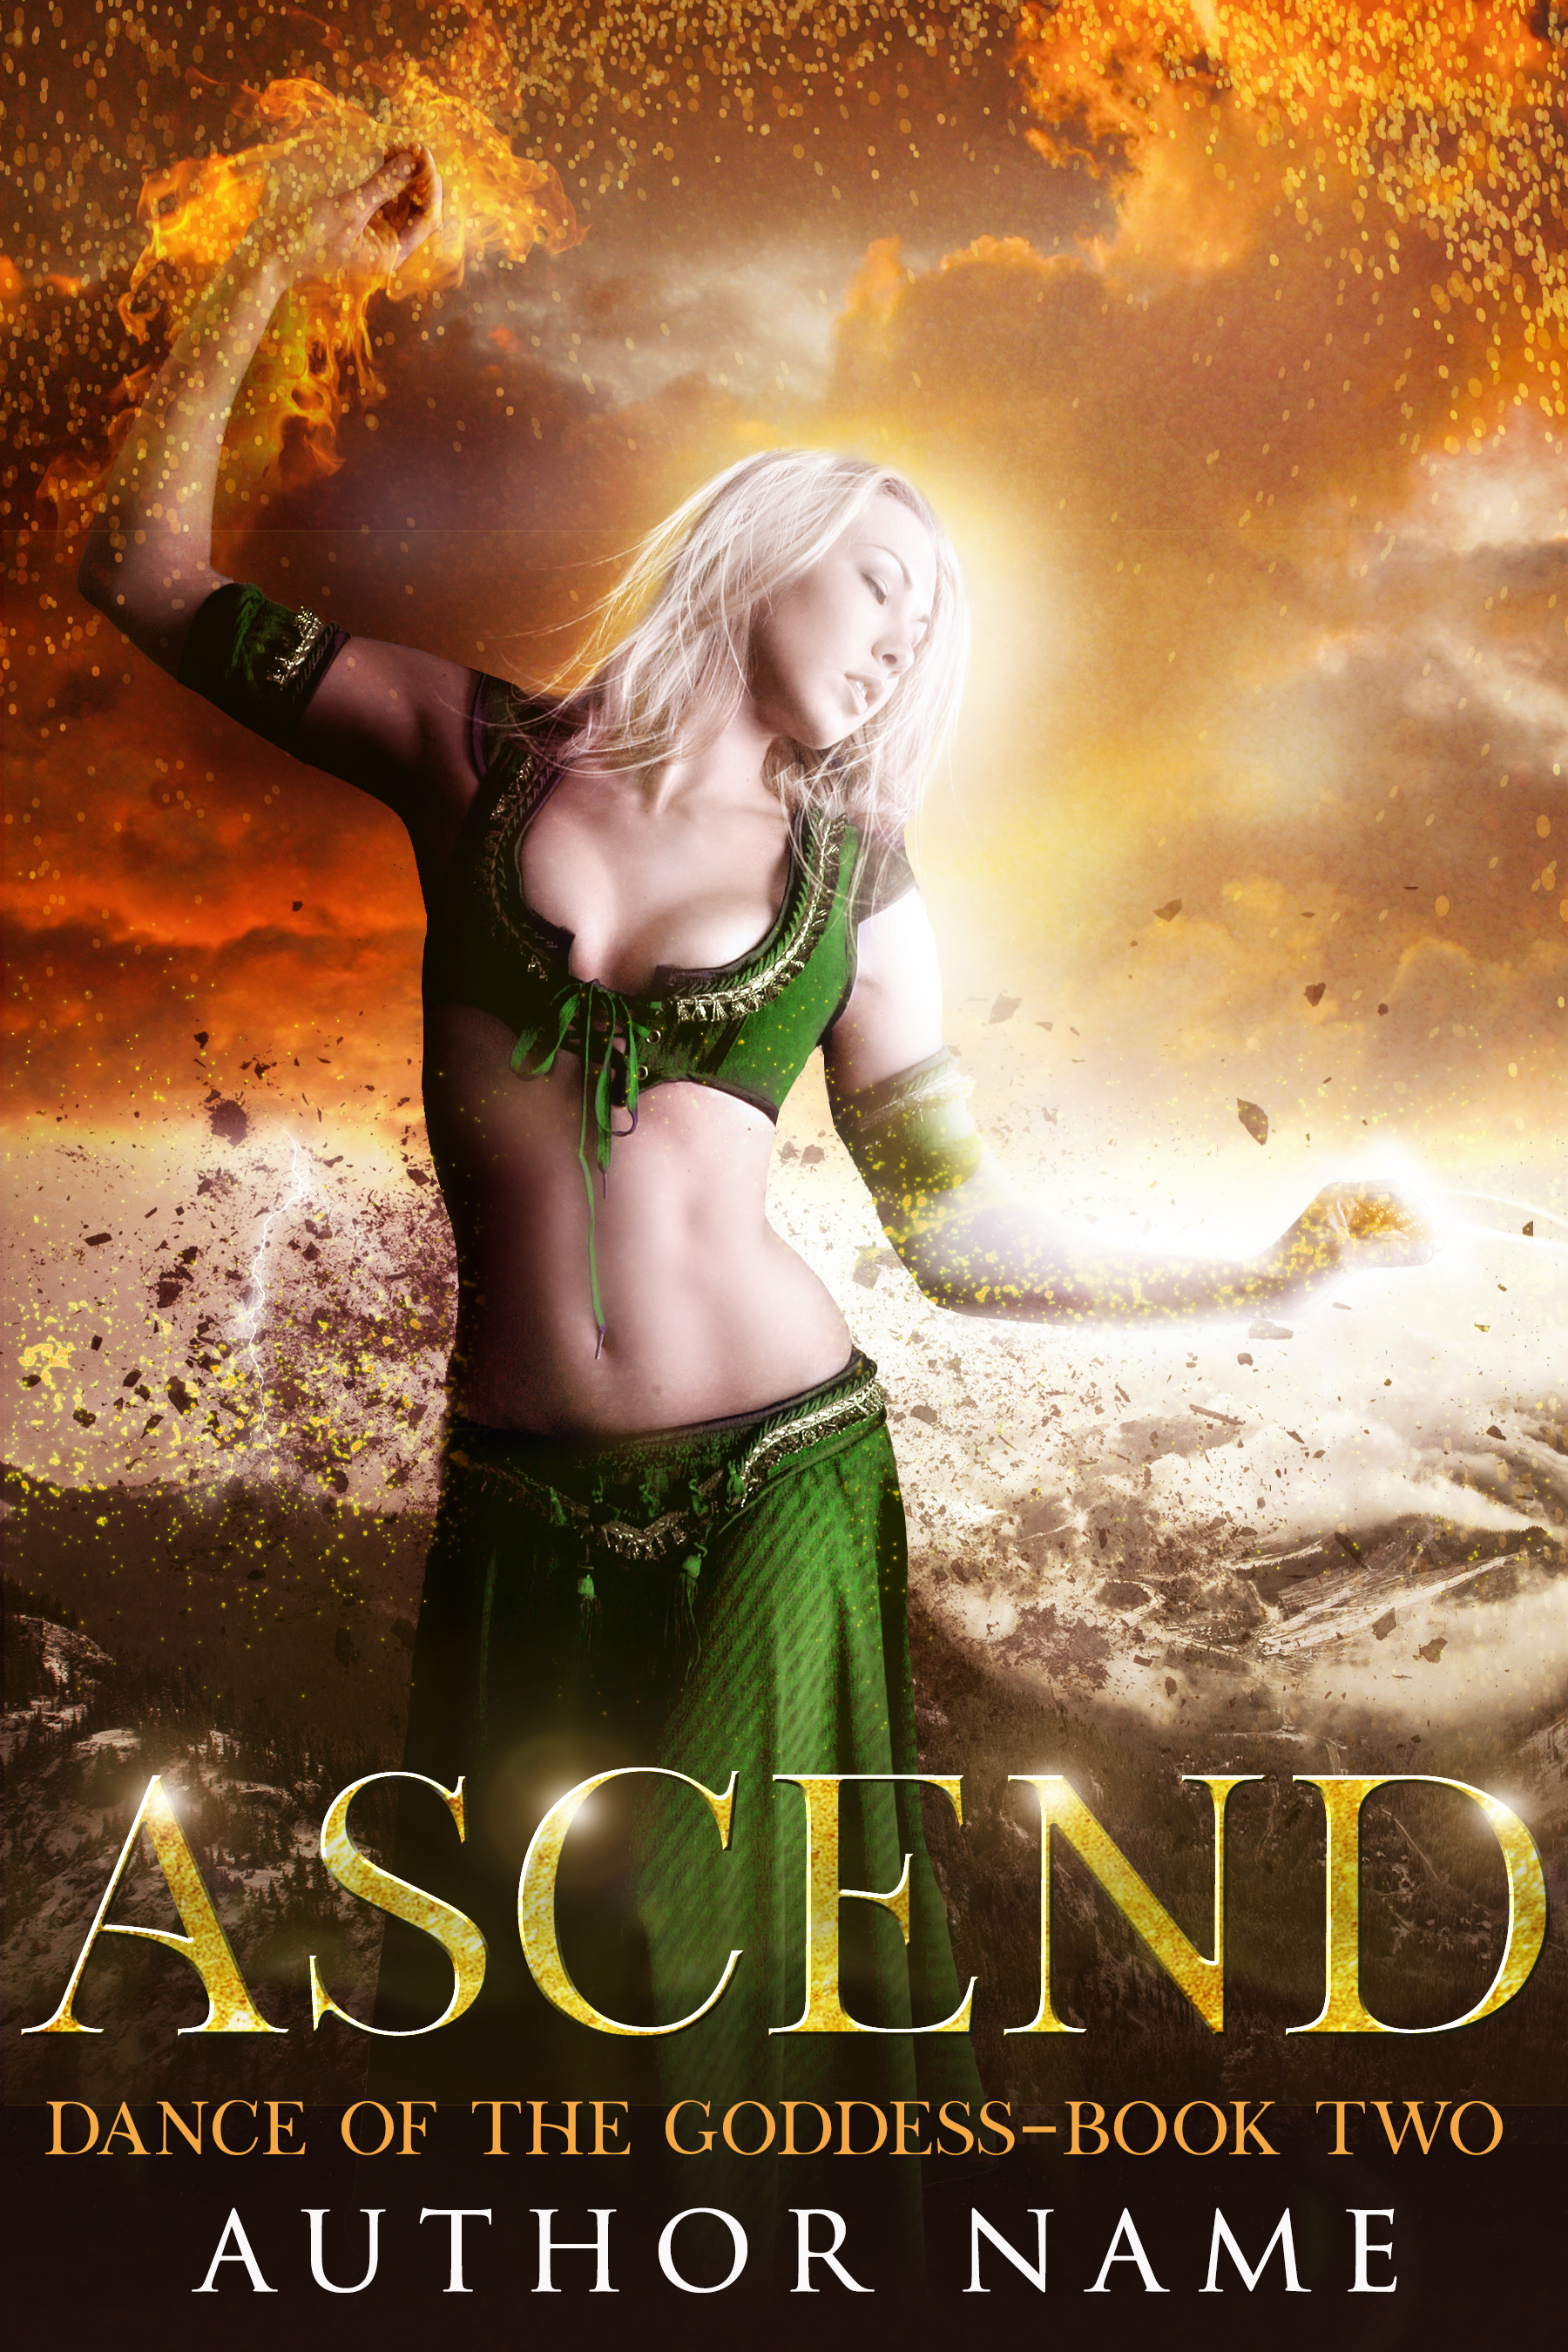 $350 - for the 3 book Goddess series